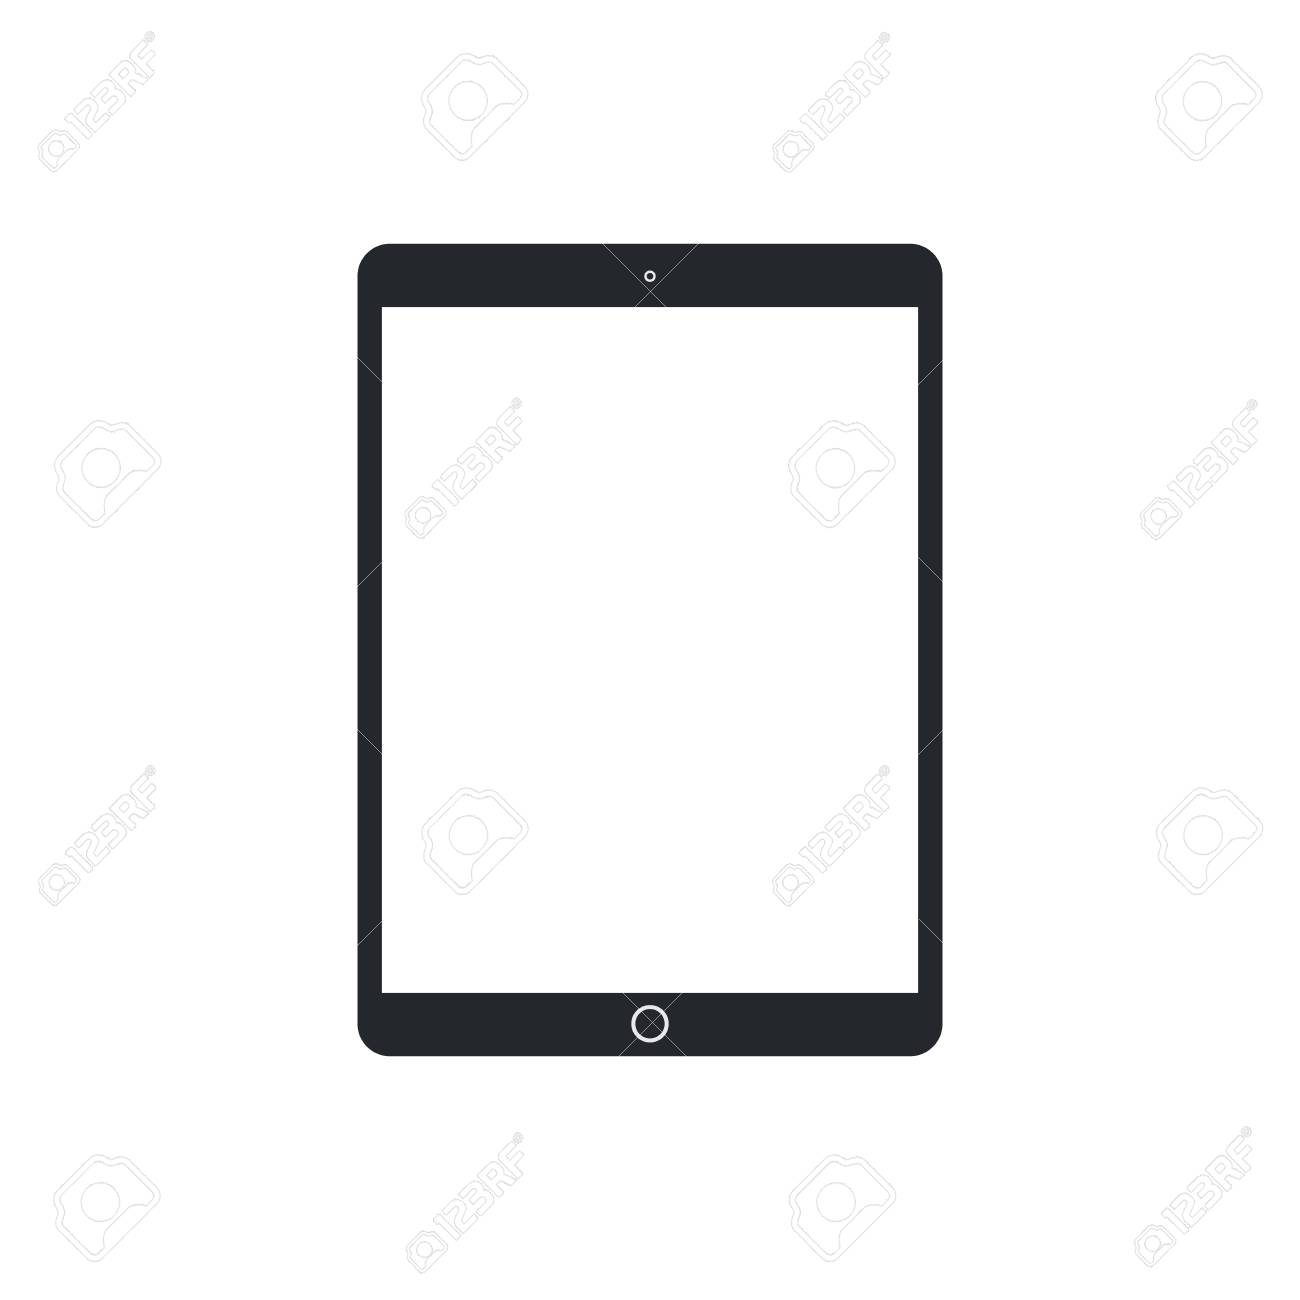 Tablet pc with blank screen on white background. Technological device template. Simple mockup vector design. - 126083797